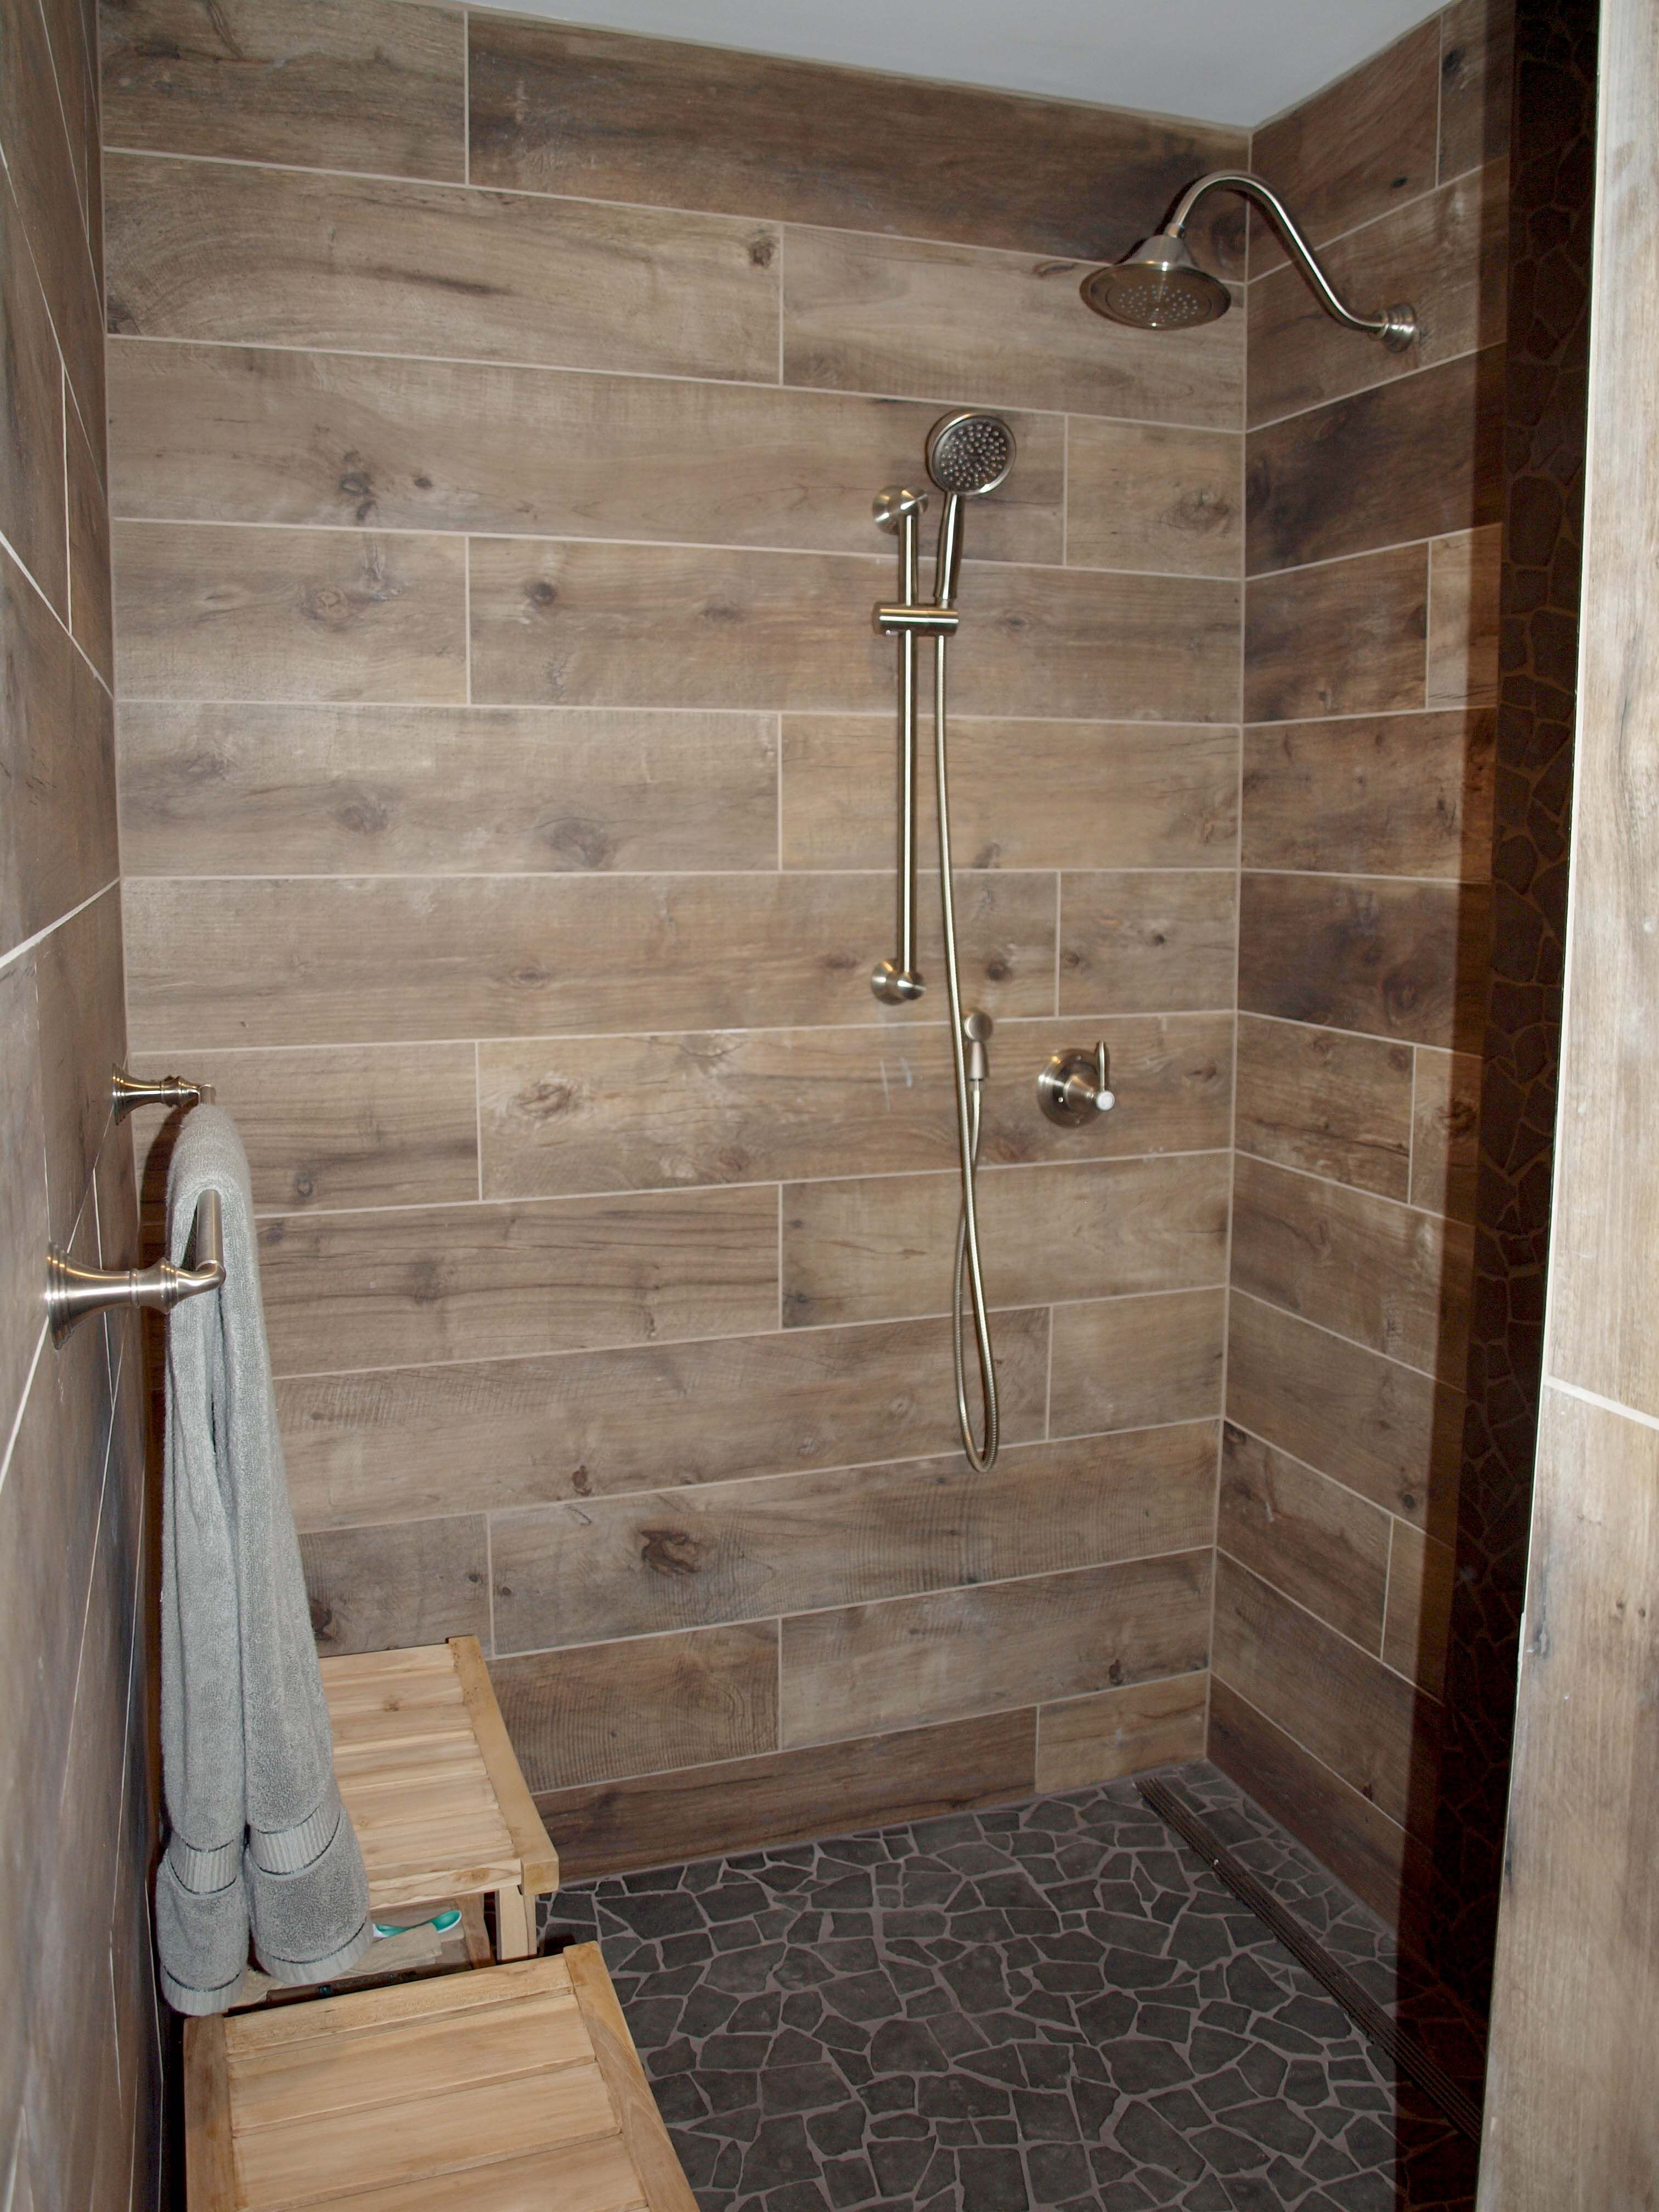 Wood Look Tile On Walls Bathroom Shower Design Wood Tile Shower Wood Tile Bathroom